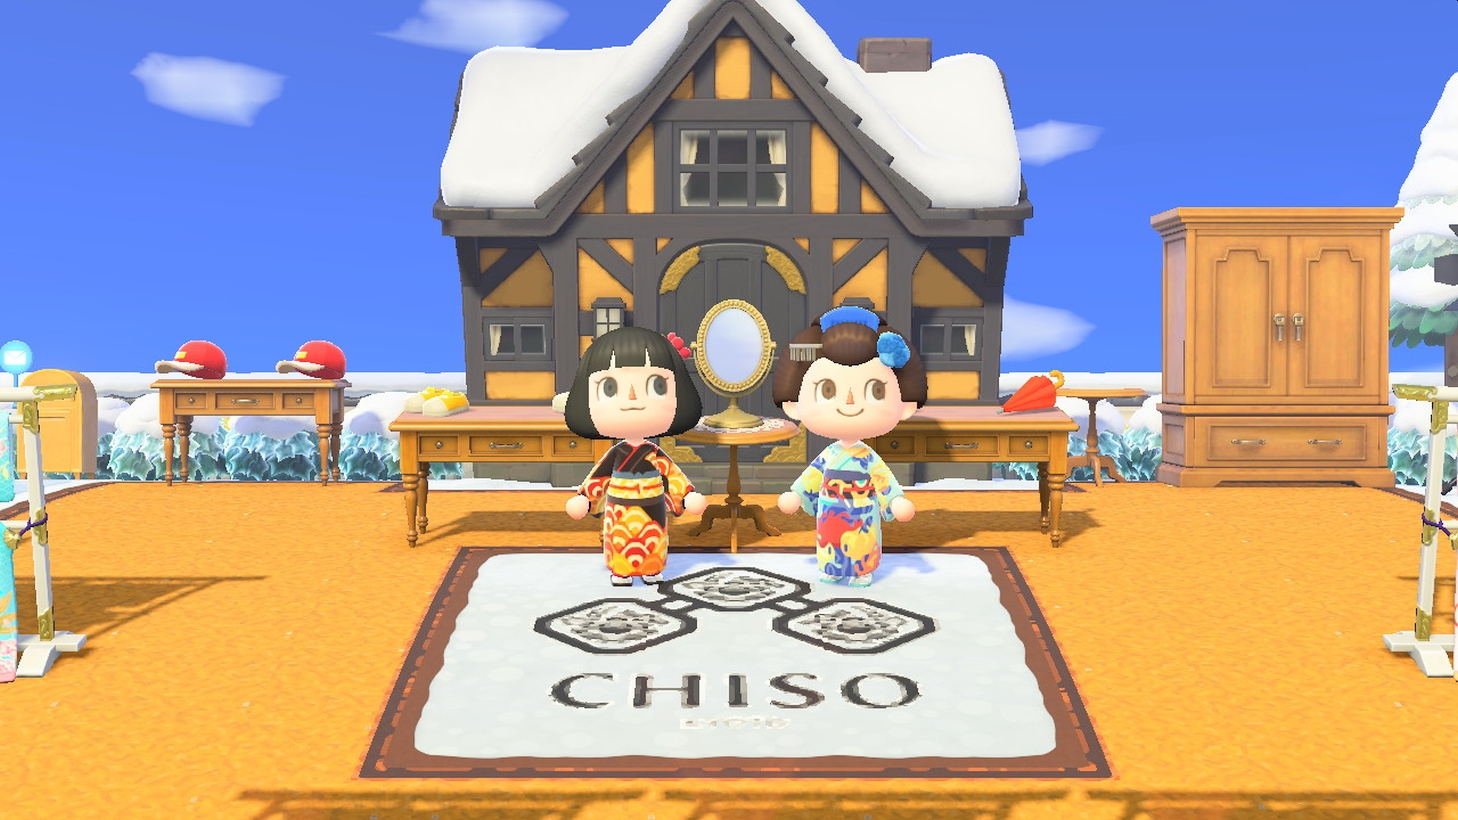 Kimono Designer Chiso Releases New Designs And Dream Island For Animal Crossing: New Horizons